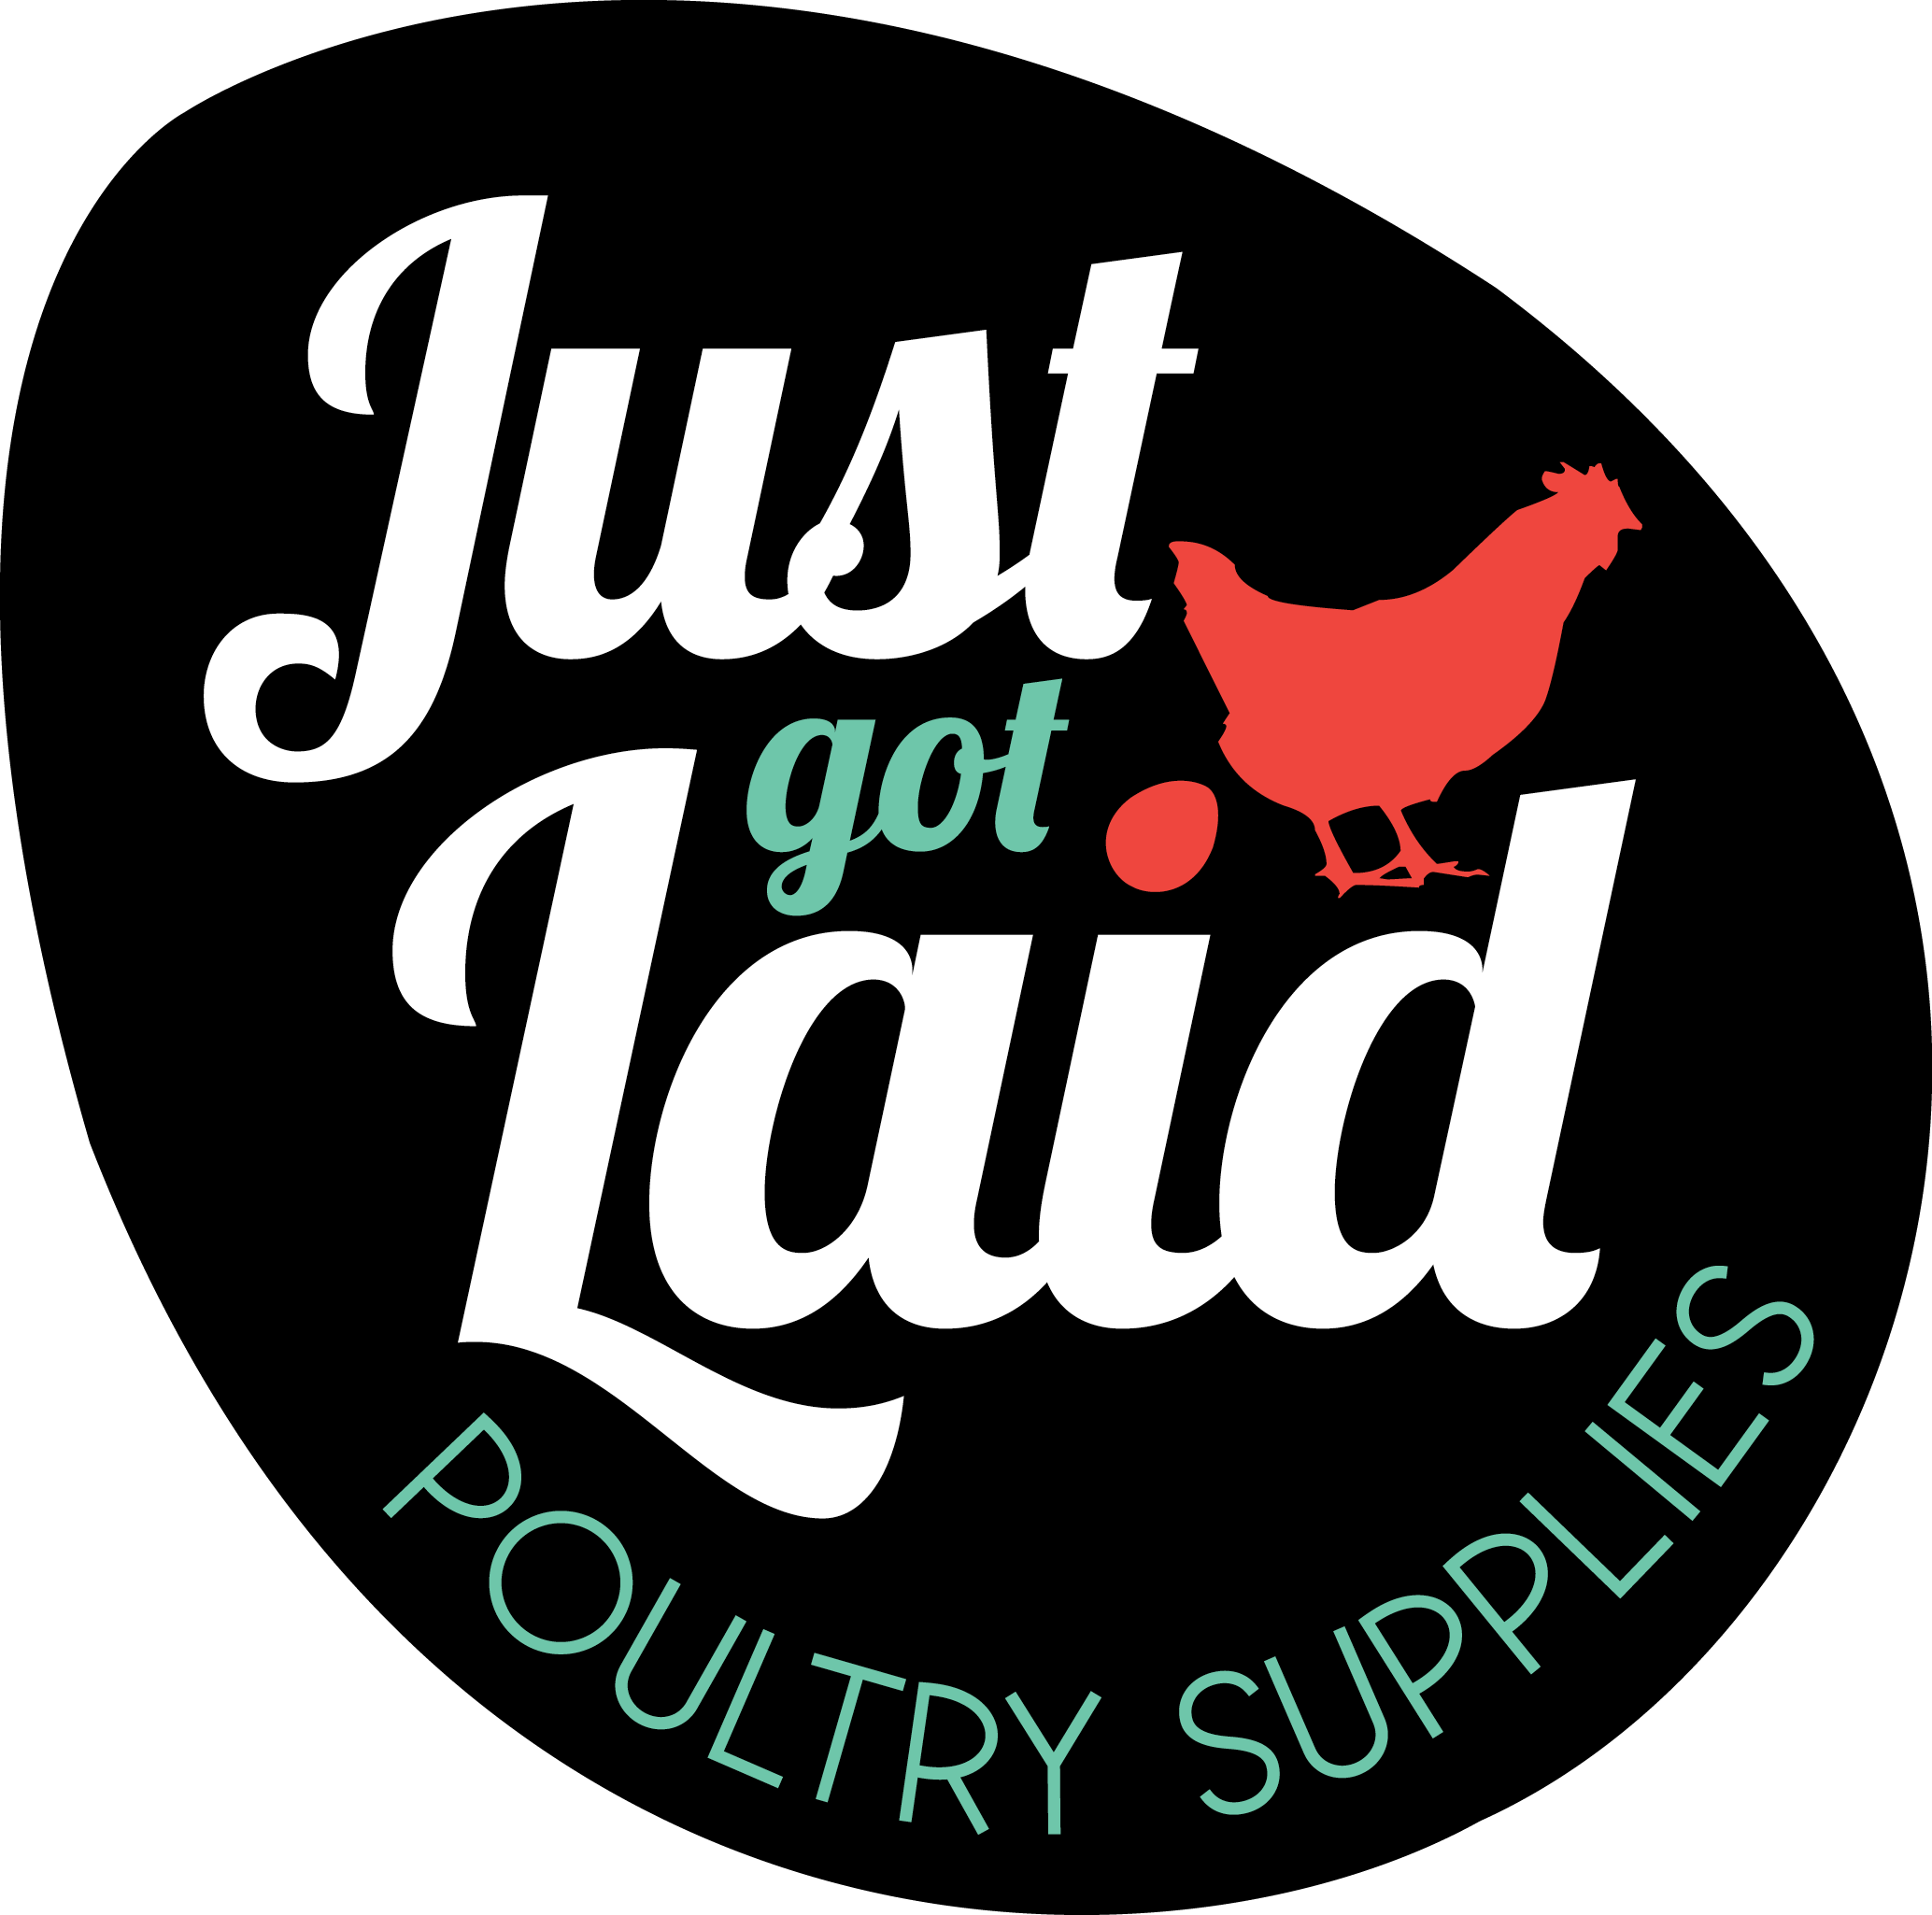 Just Got Laid Poultry Supplies & Q Stockfeeds